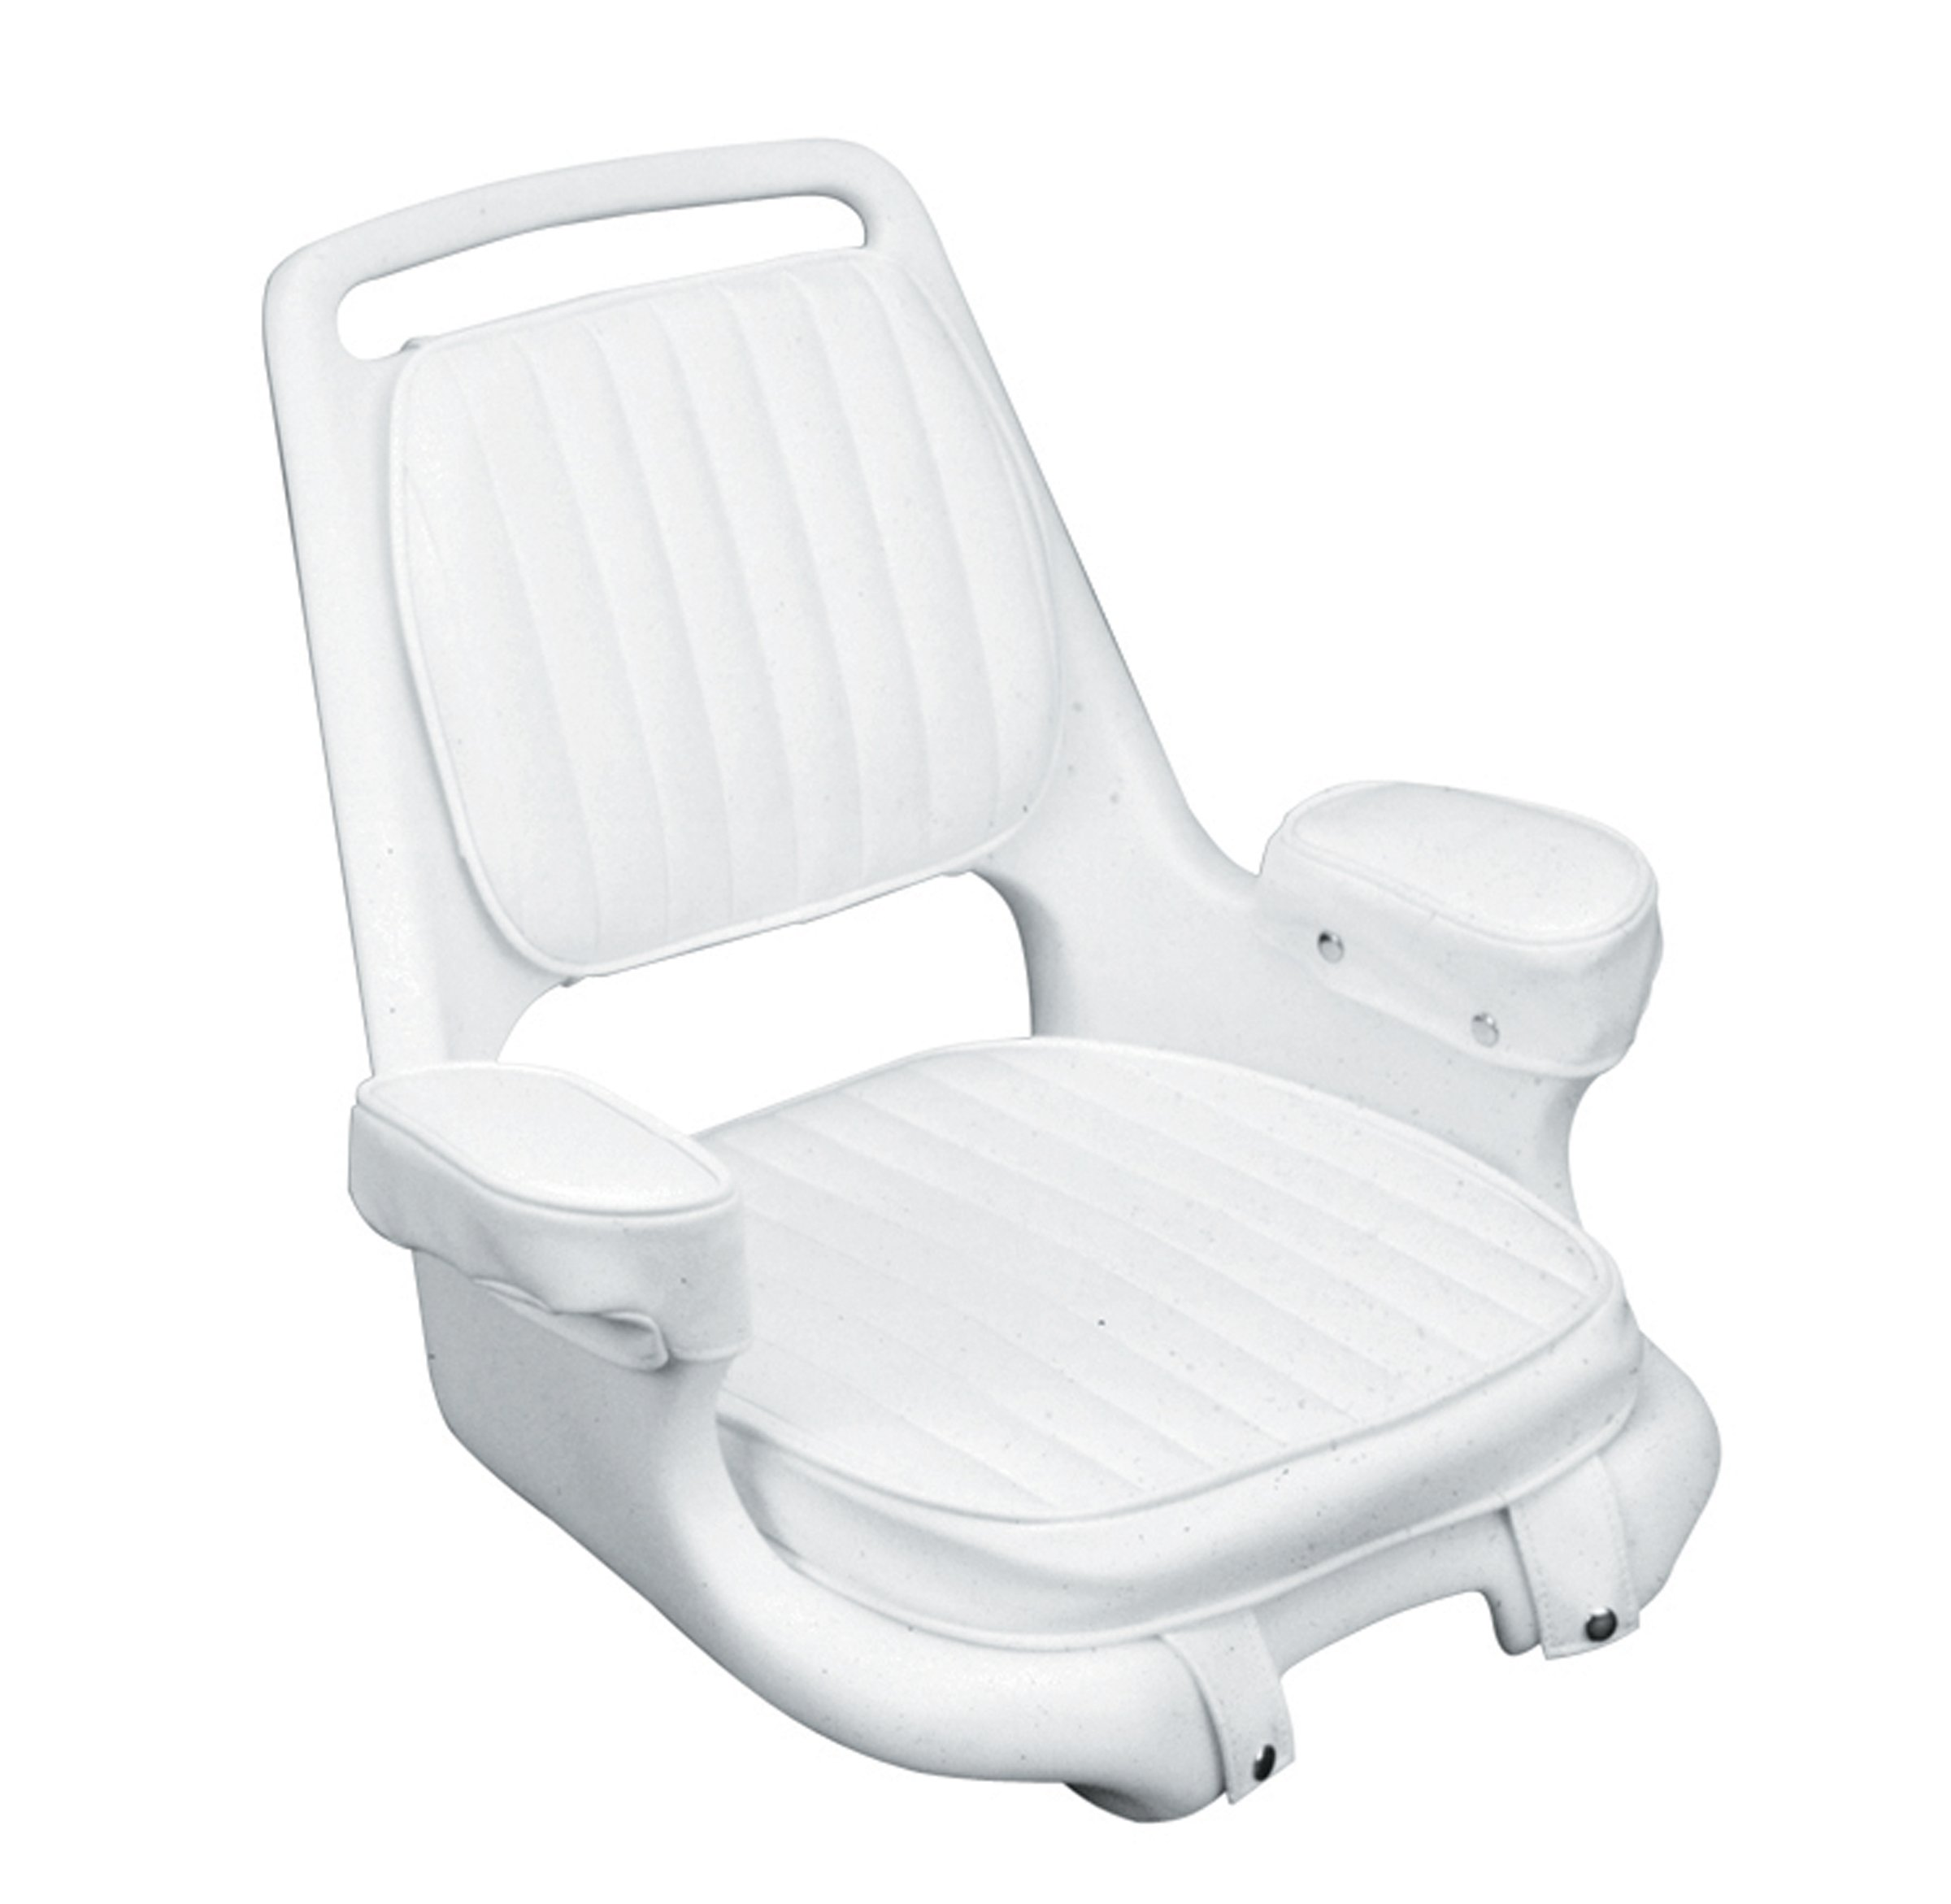 Moeller Heavy Duty Extra-Wide Offshore Boat Helm Seat, Cushion, and Mounting Plate Set (22'' x 21'' x 18.38'', White) by Moeller Marine